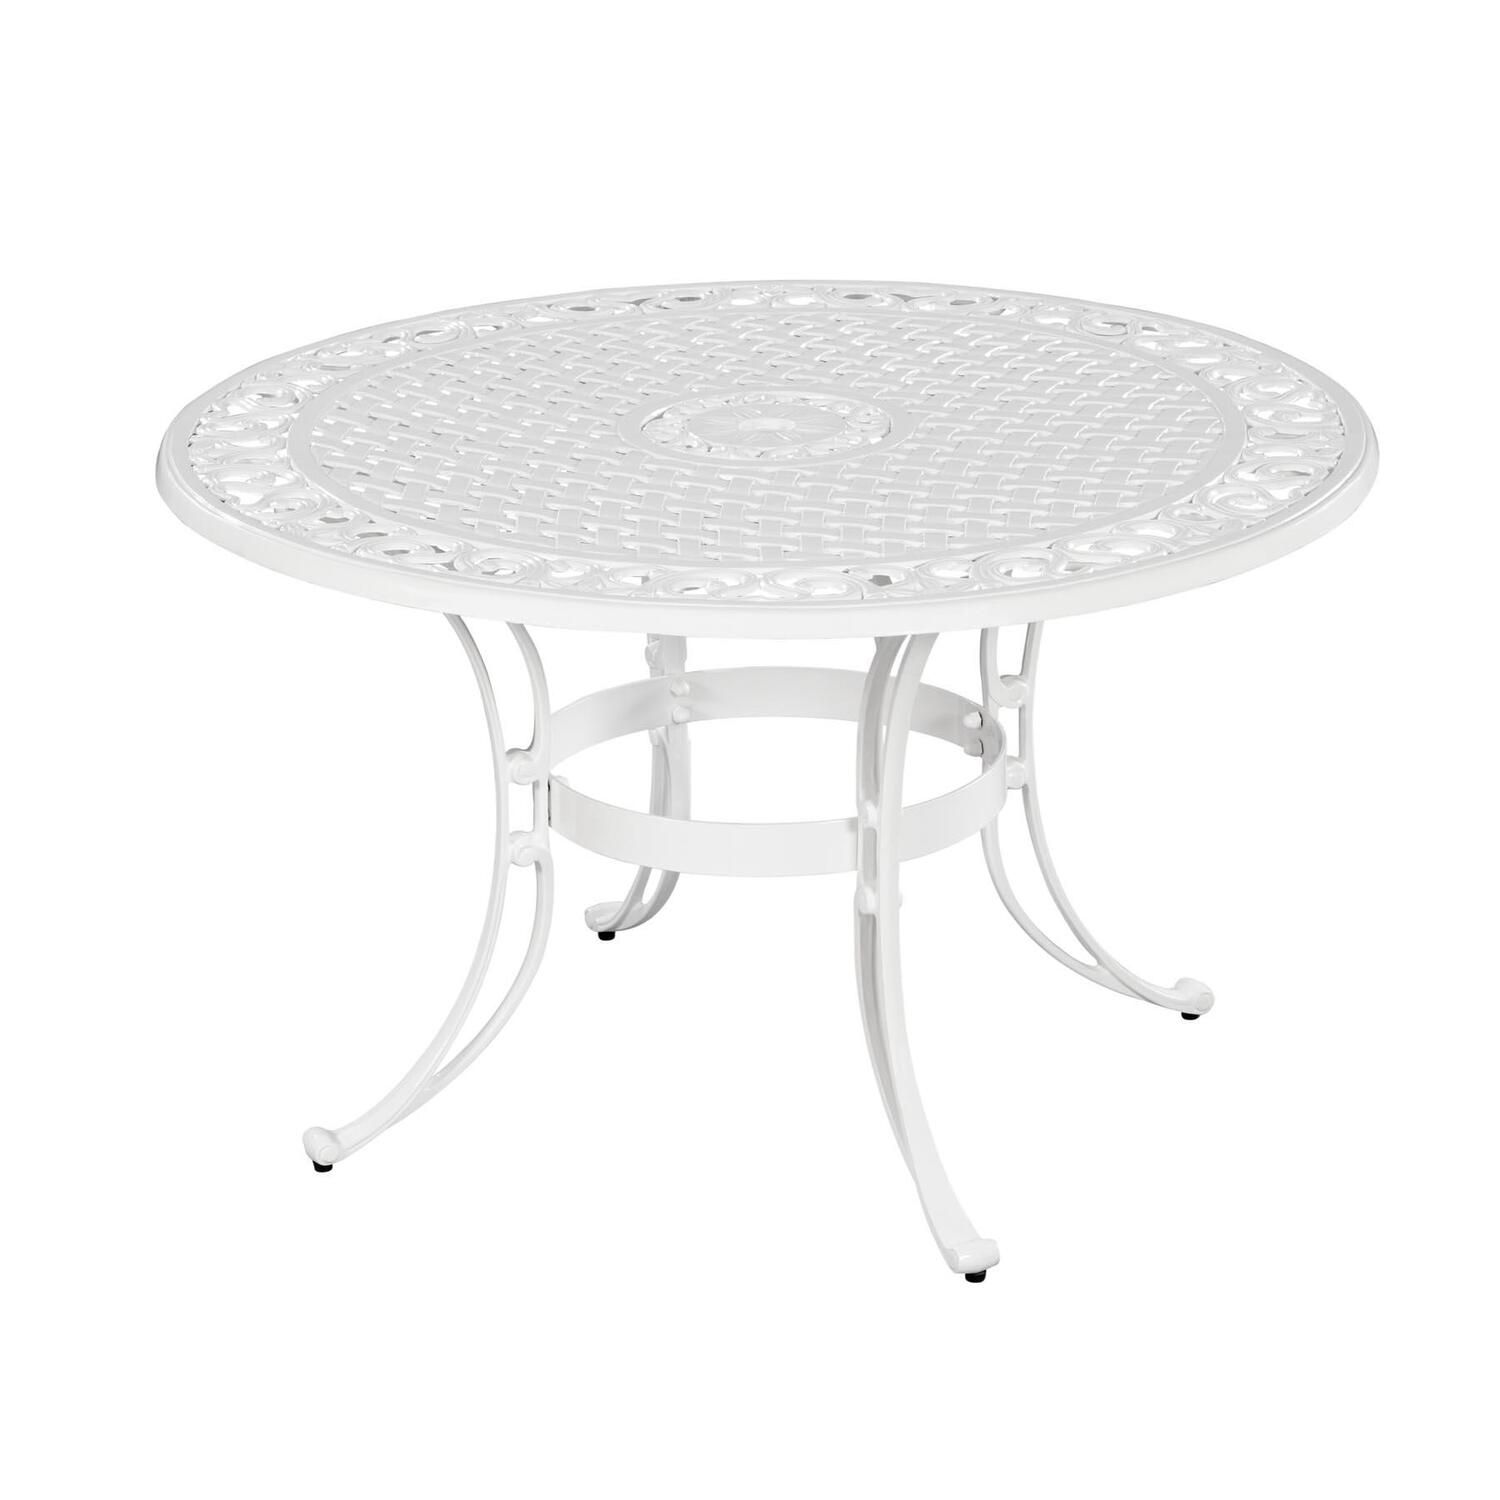 Home styles biscayne 48 round dining table white finish for 32 wide dining table